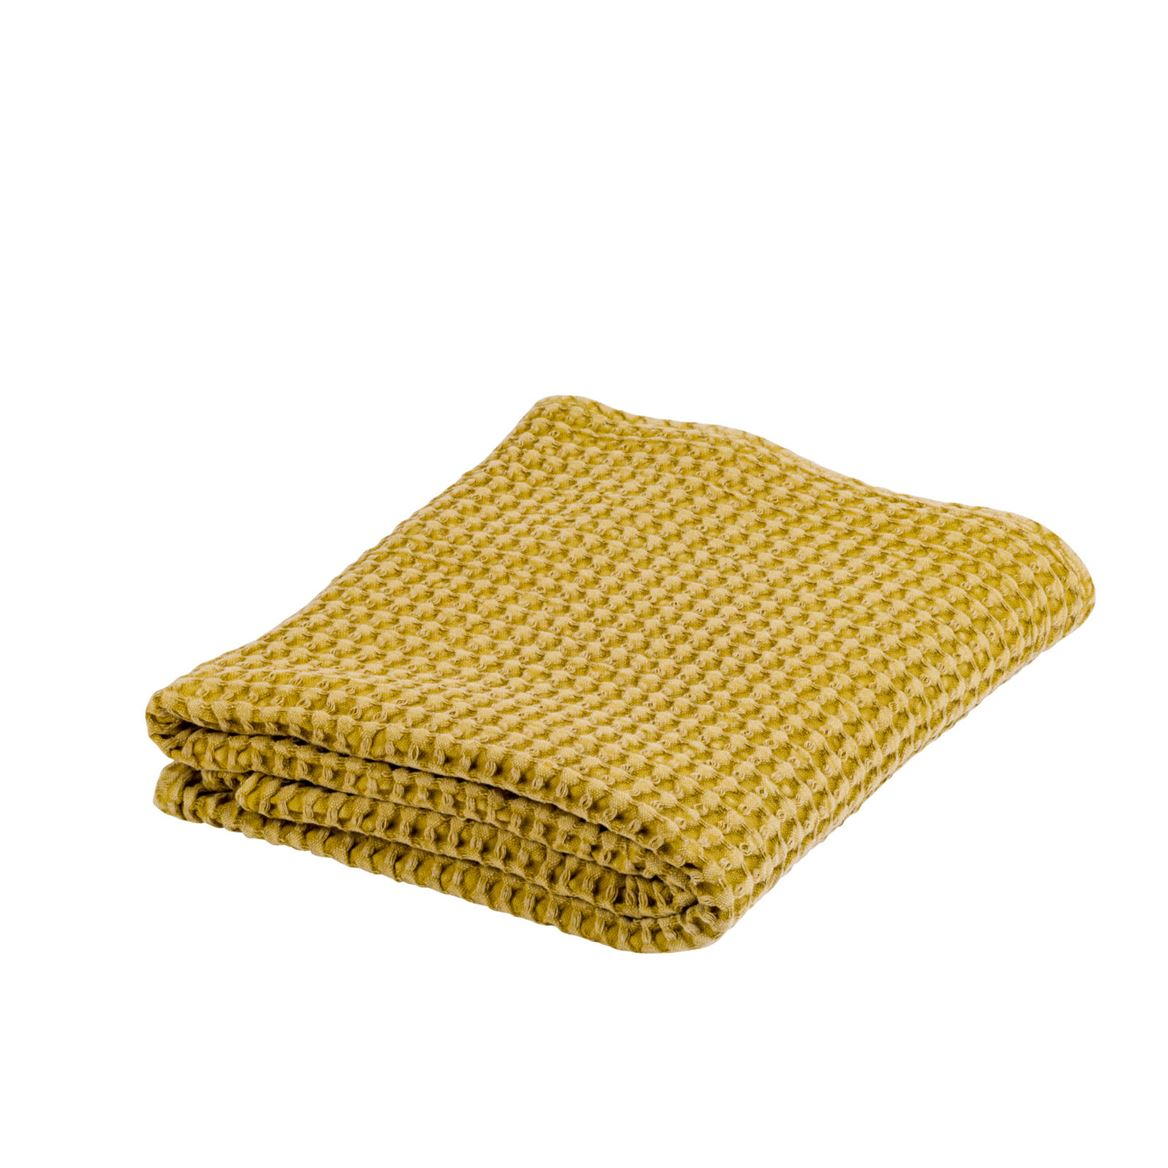 GOFRA Plaid jaune Larg. 125 x Long. 150 cm_gofra-plaid-jaune-larg--125-x-long--150-cm